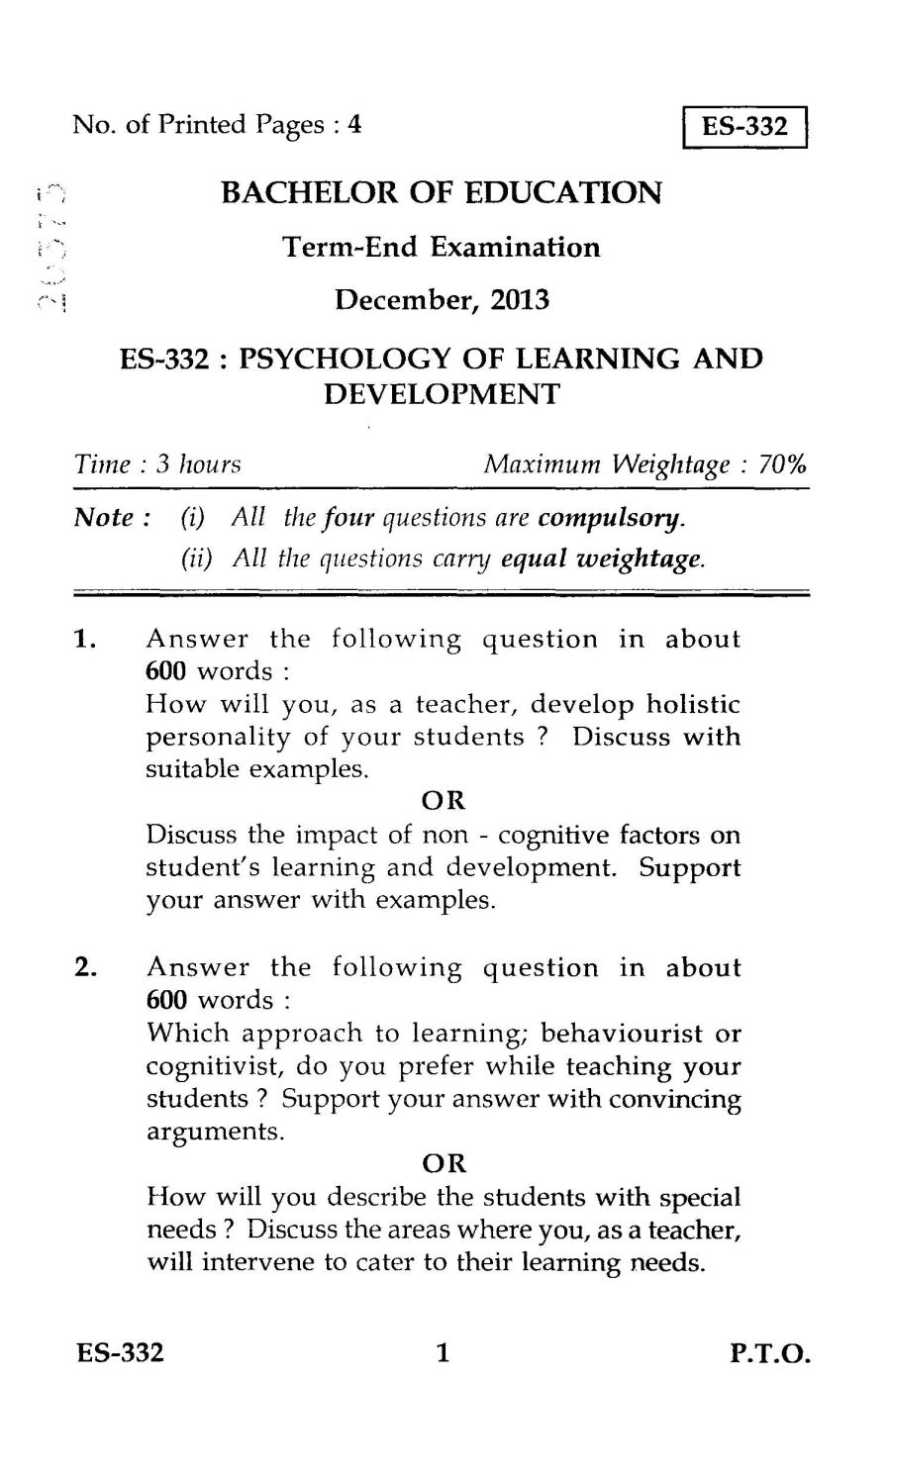 developmental psychology essay exam questions Exam questions for essay-based courses often contain 'process words' these  require you to organise what you know about a topic in a particular way.